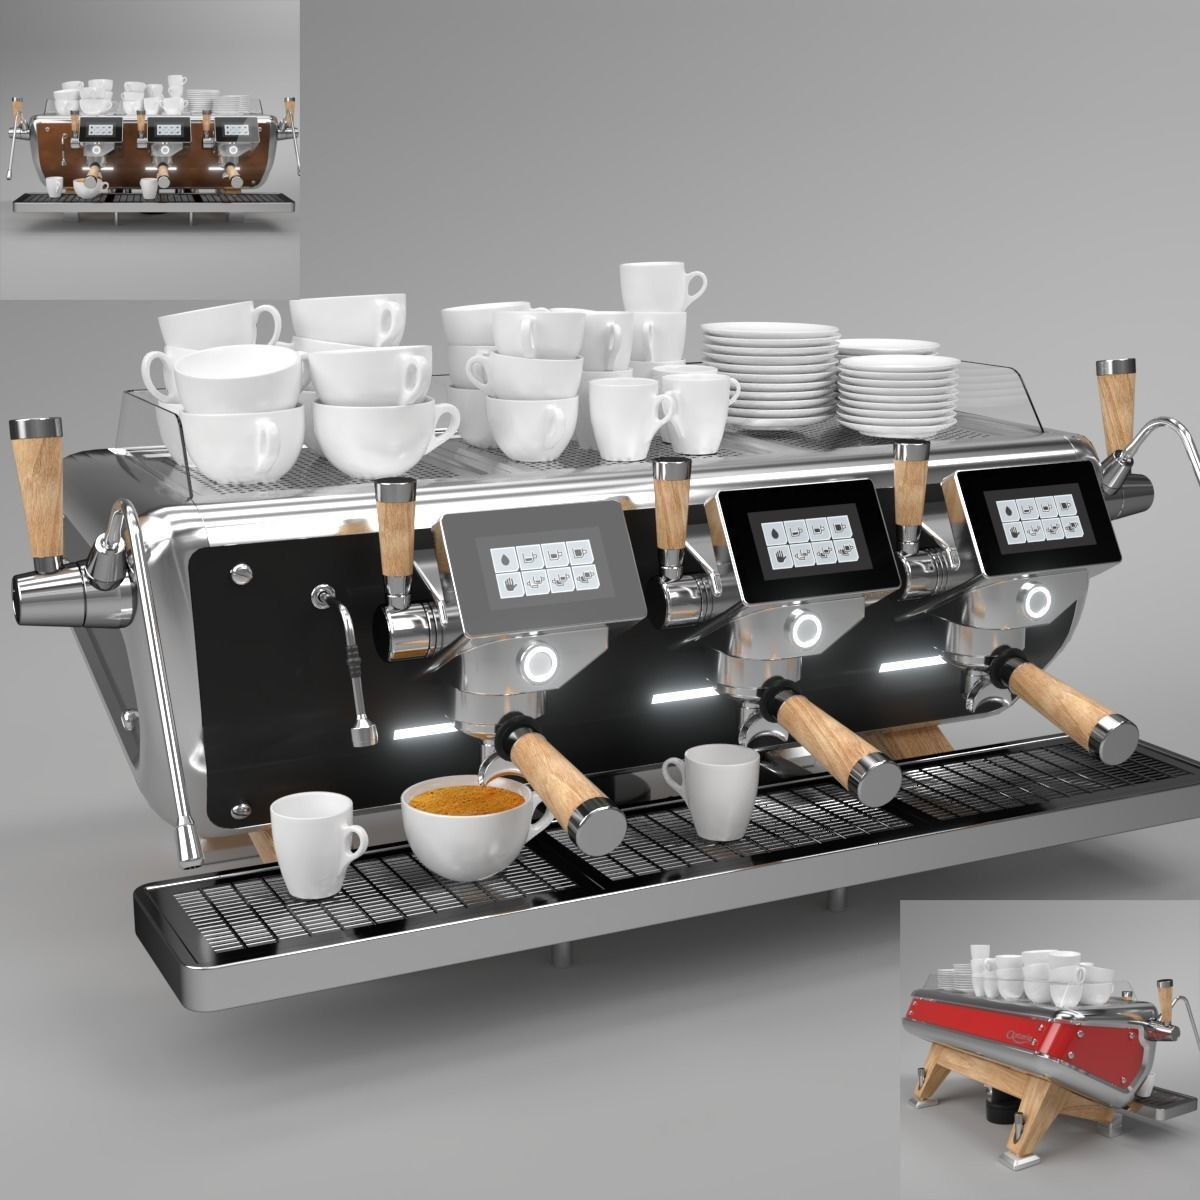 Astoria Coffee Machine Storm 3 Group Set Blender Cycles 3d Model